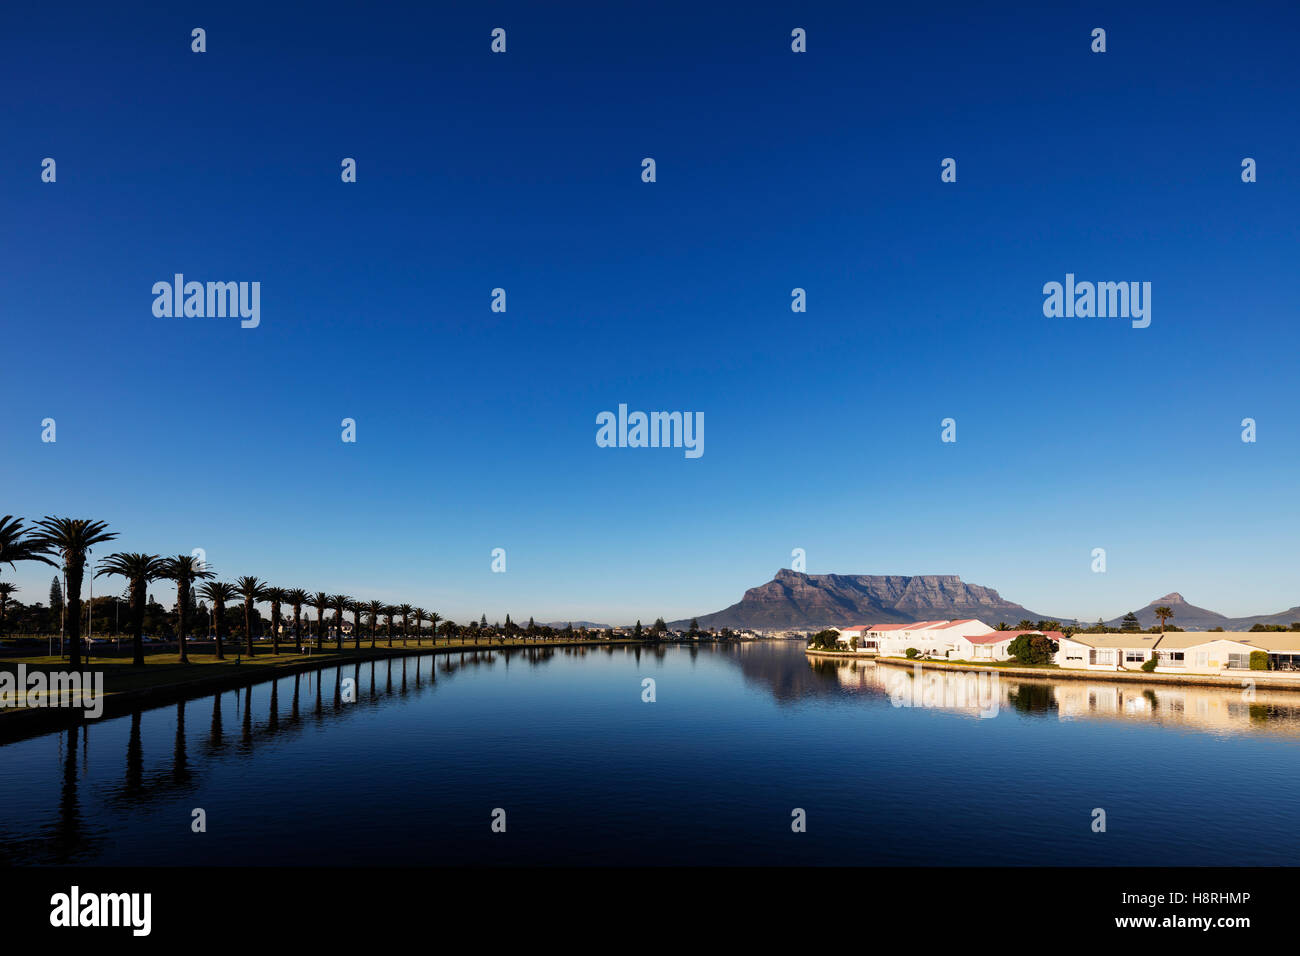 South Africa, Western Cape, Cape Town, Table Mountain and Milnerton Vlei - Stock Image